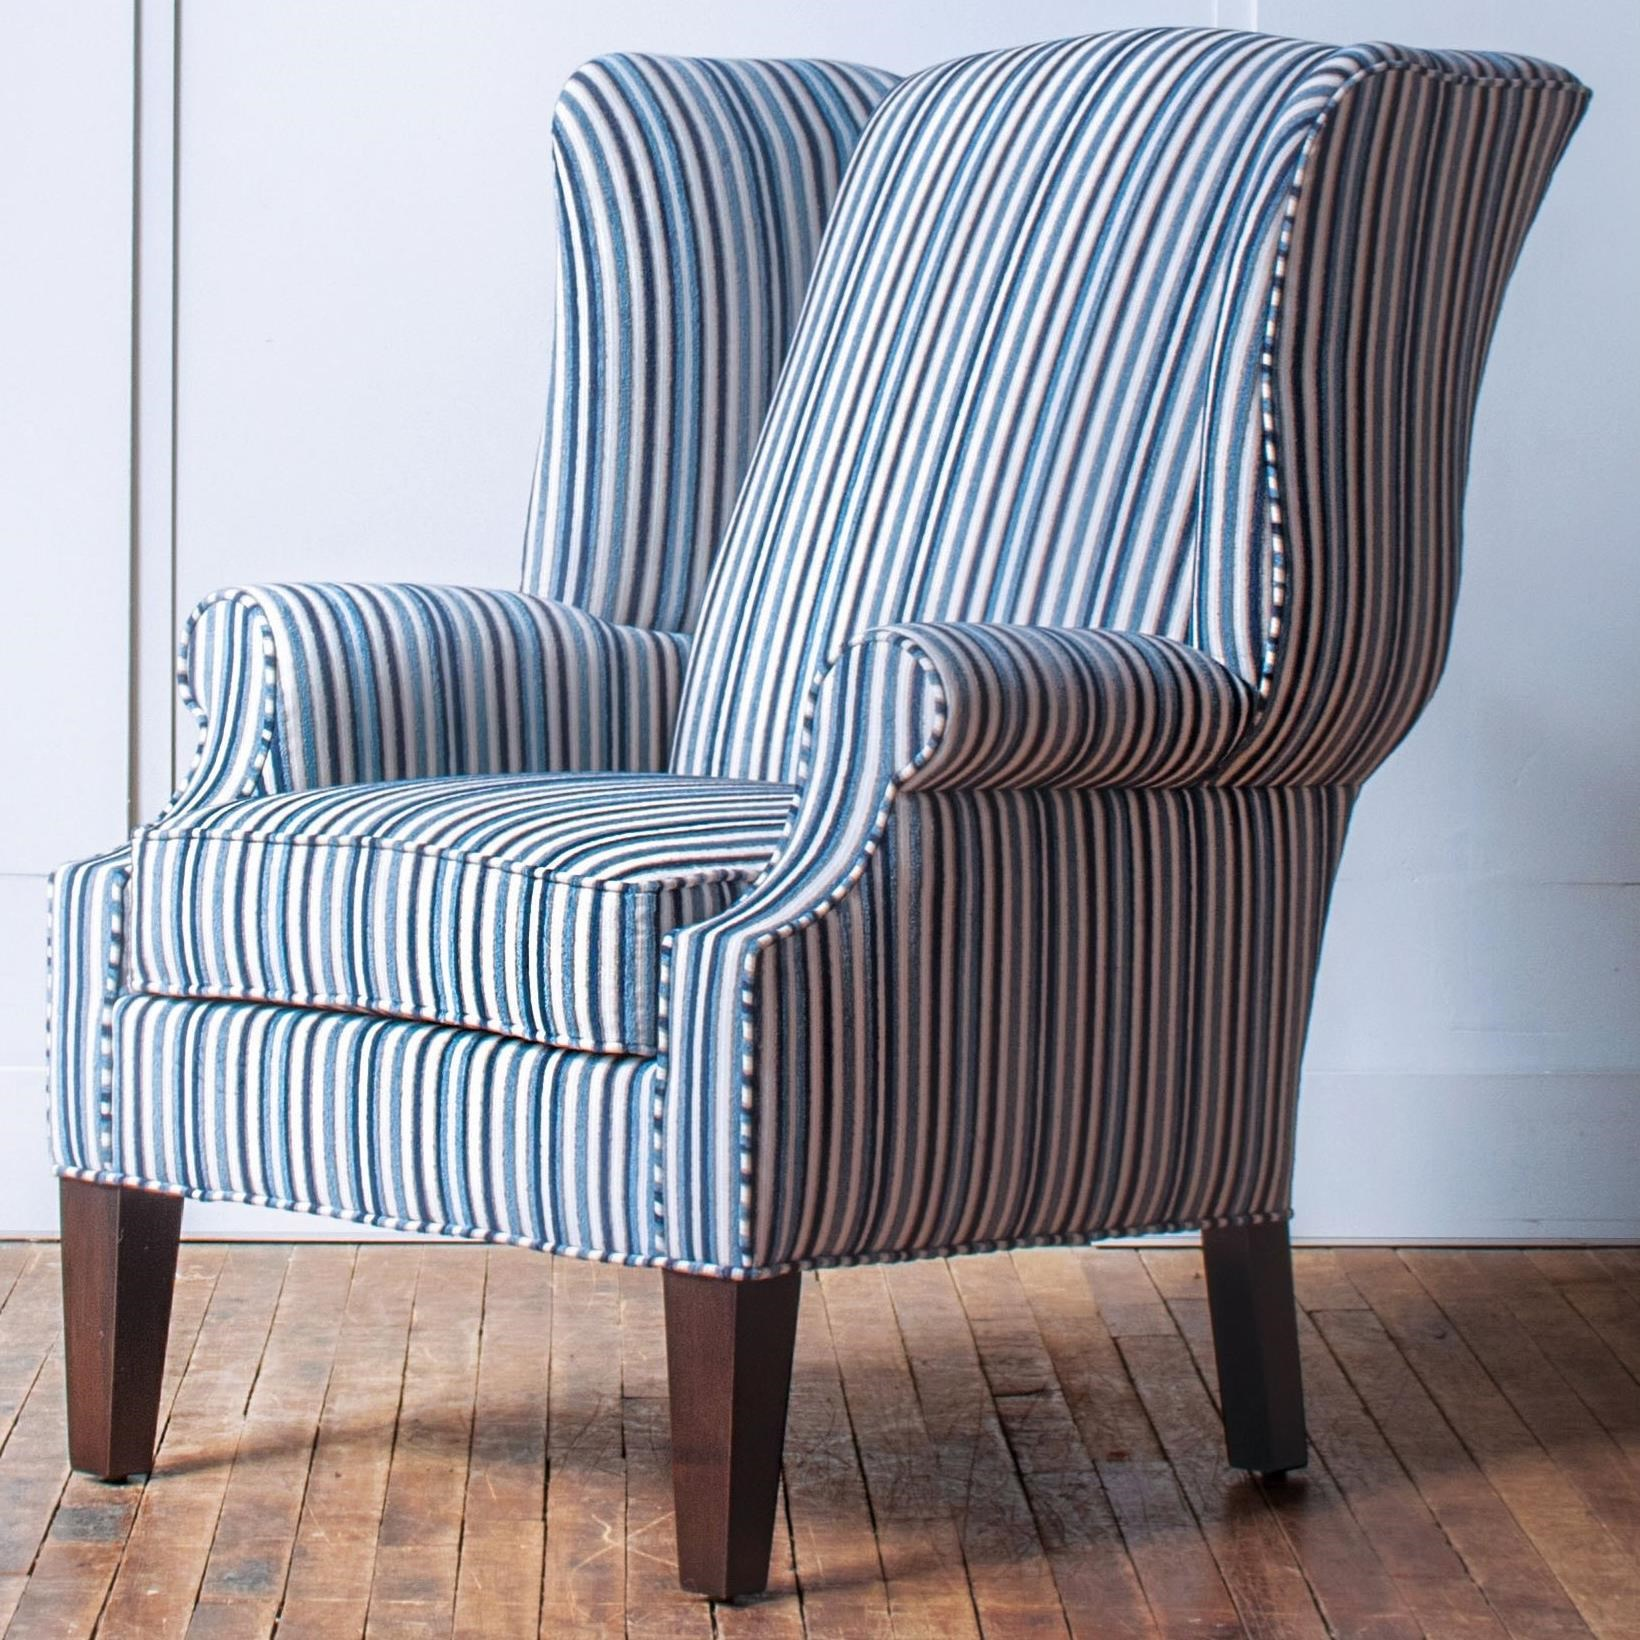 Tremendous Hallagan Furniture Accent Chairs Customizable Wing Back Gamerscity Chair Design For Home Gamerscityorg